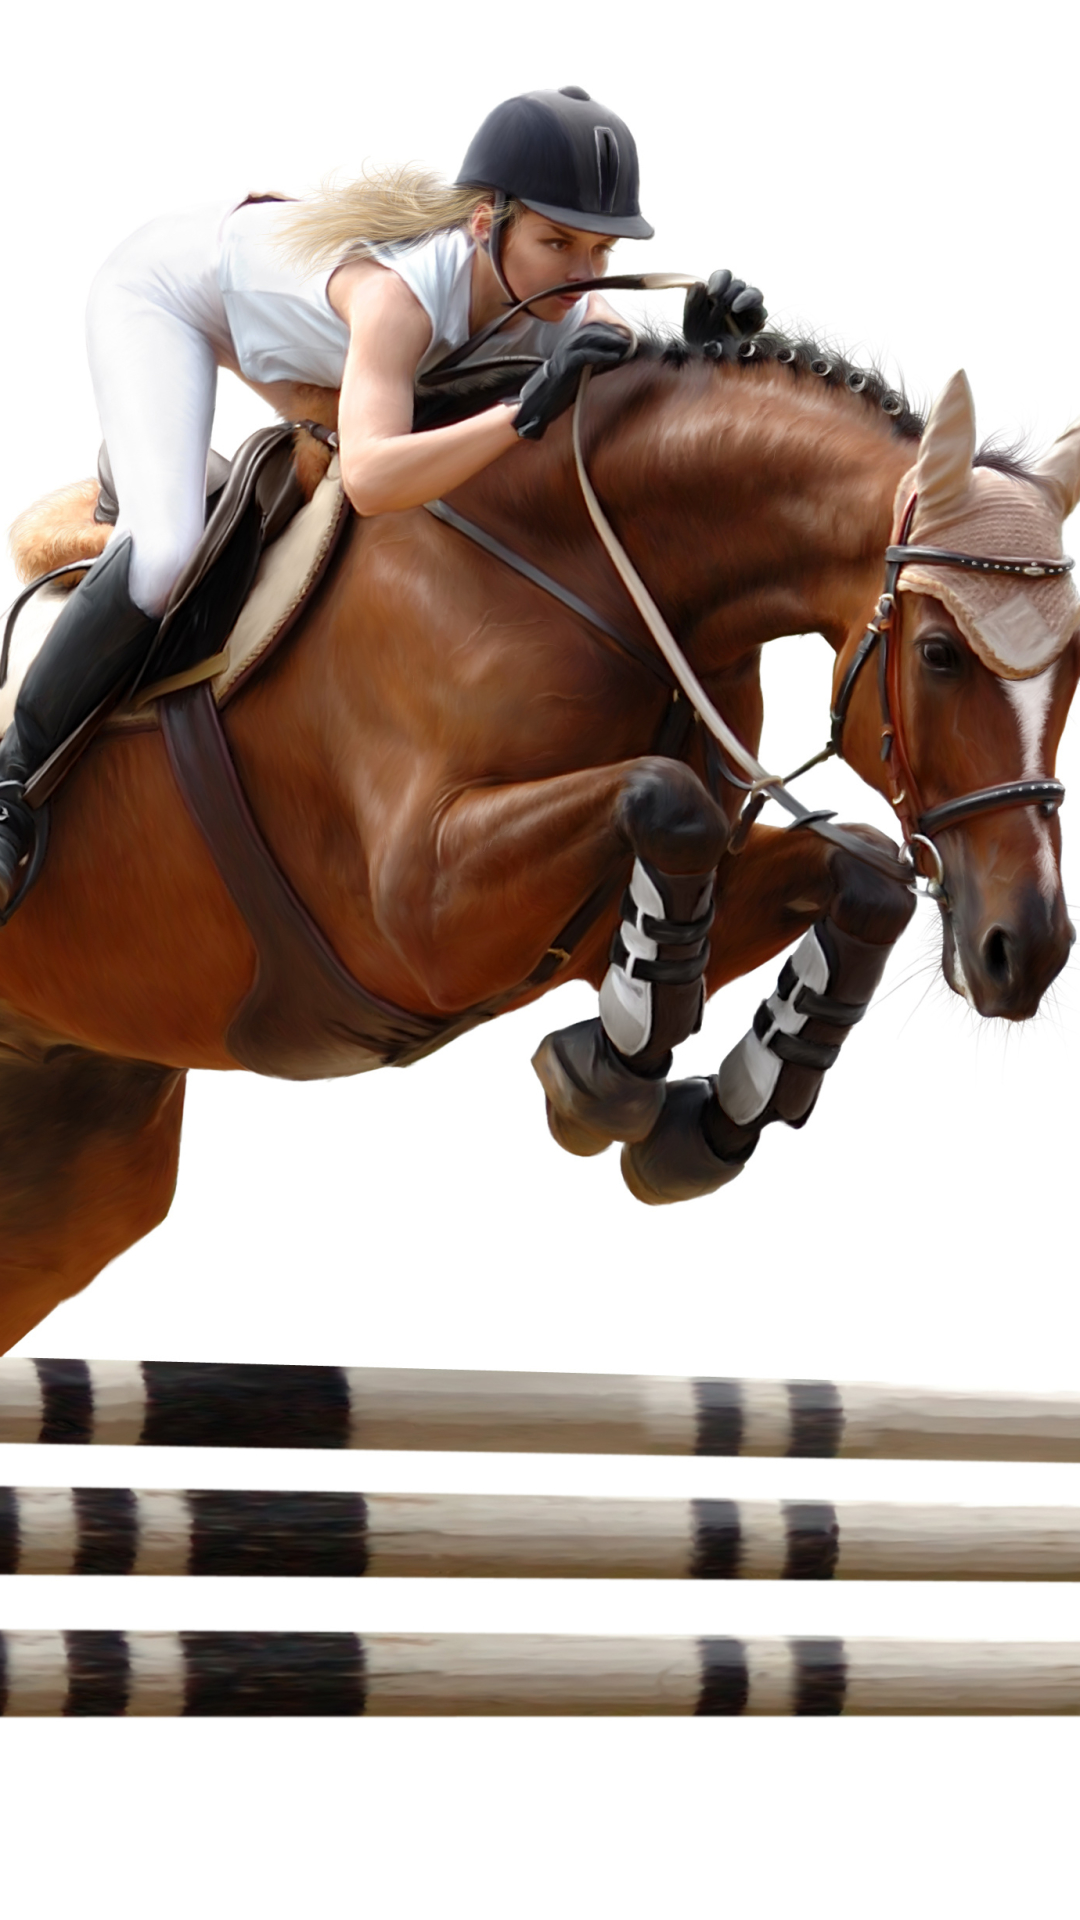 Sports Show Jumping 1080x1920 Wallpaper Id 685716 Mobile Abyss